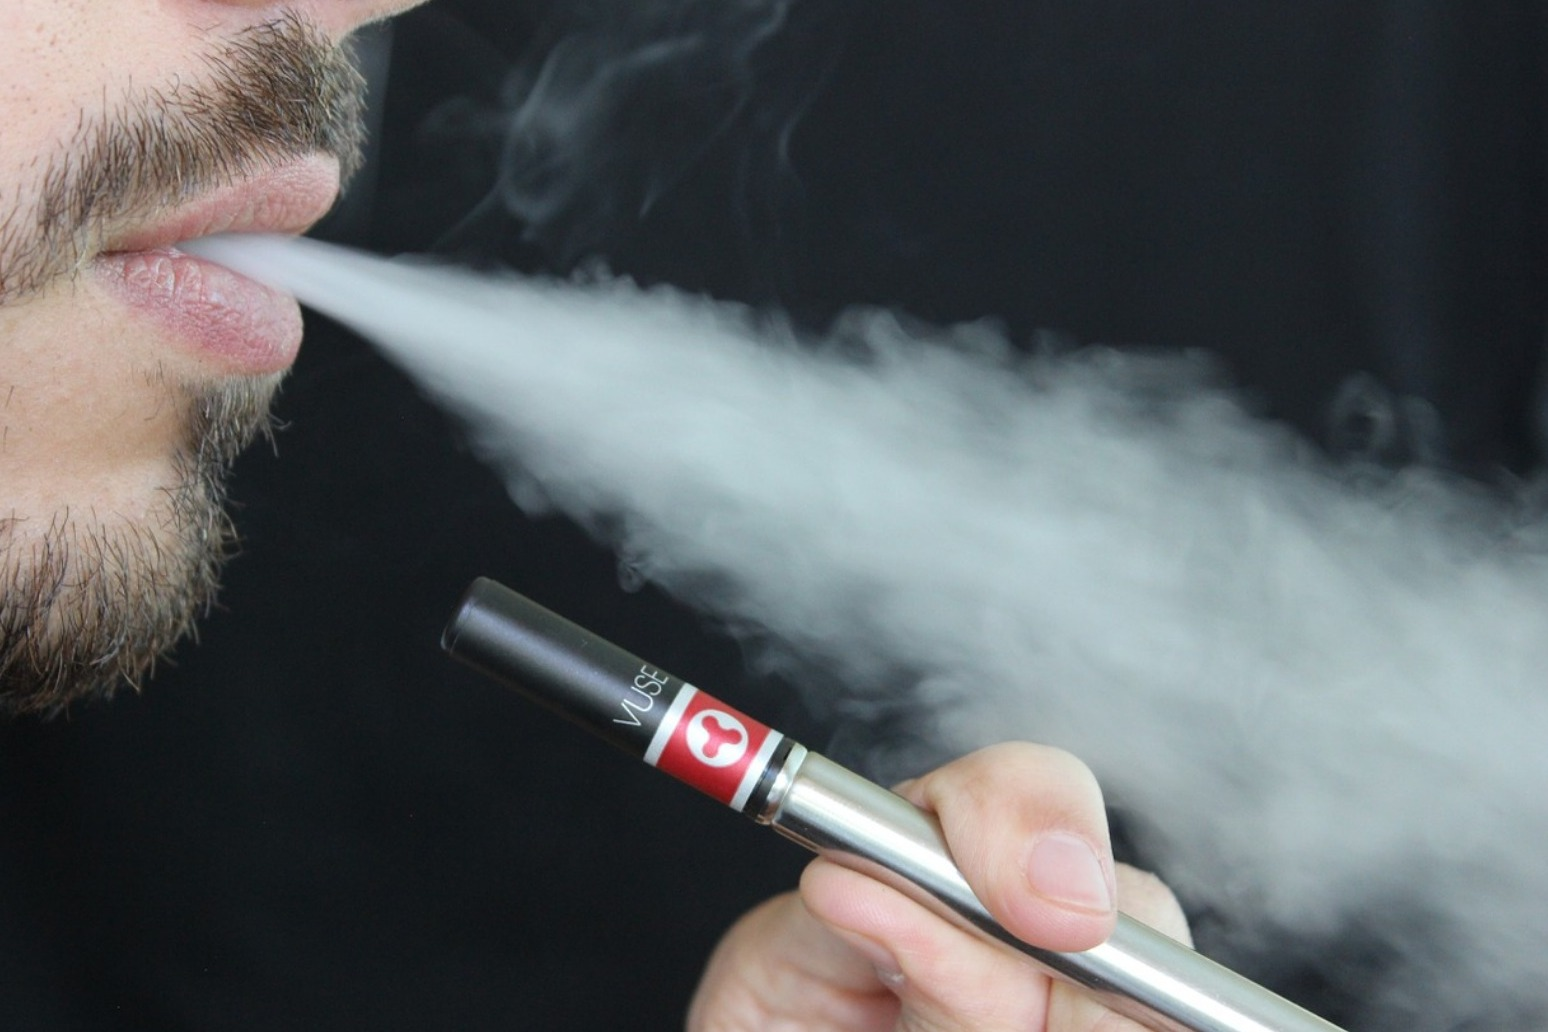 MPs call for rules around e-cigarettes to be relaxed in the future